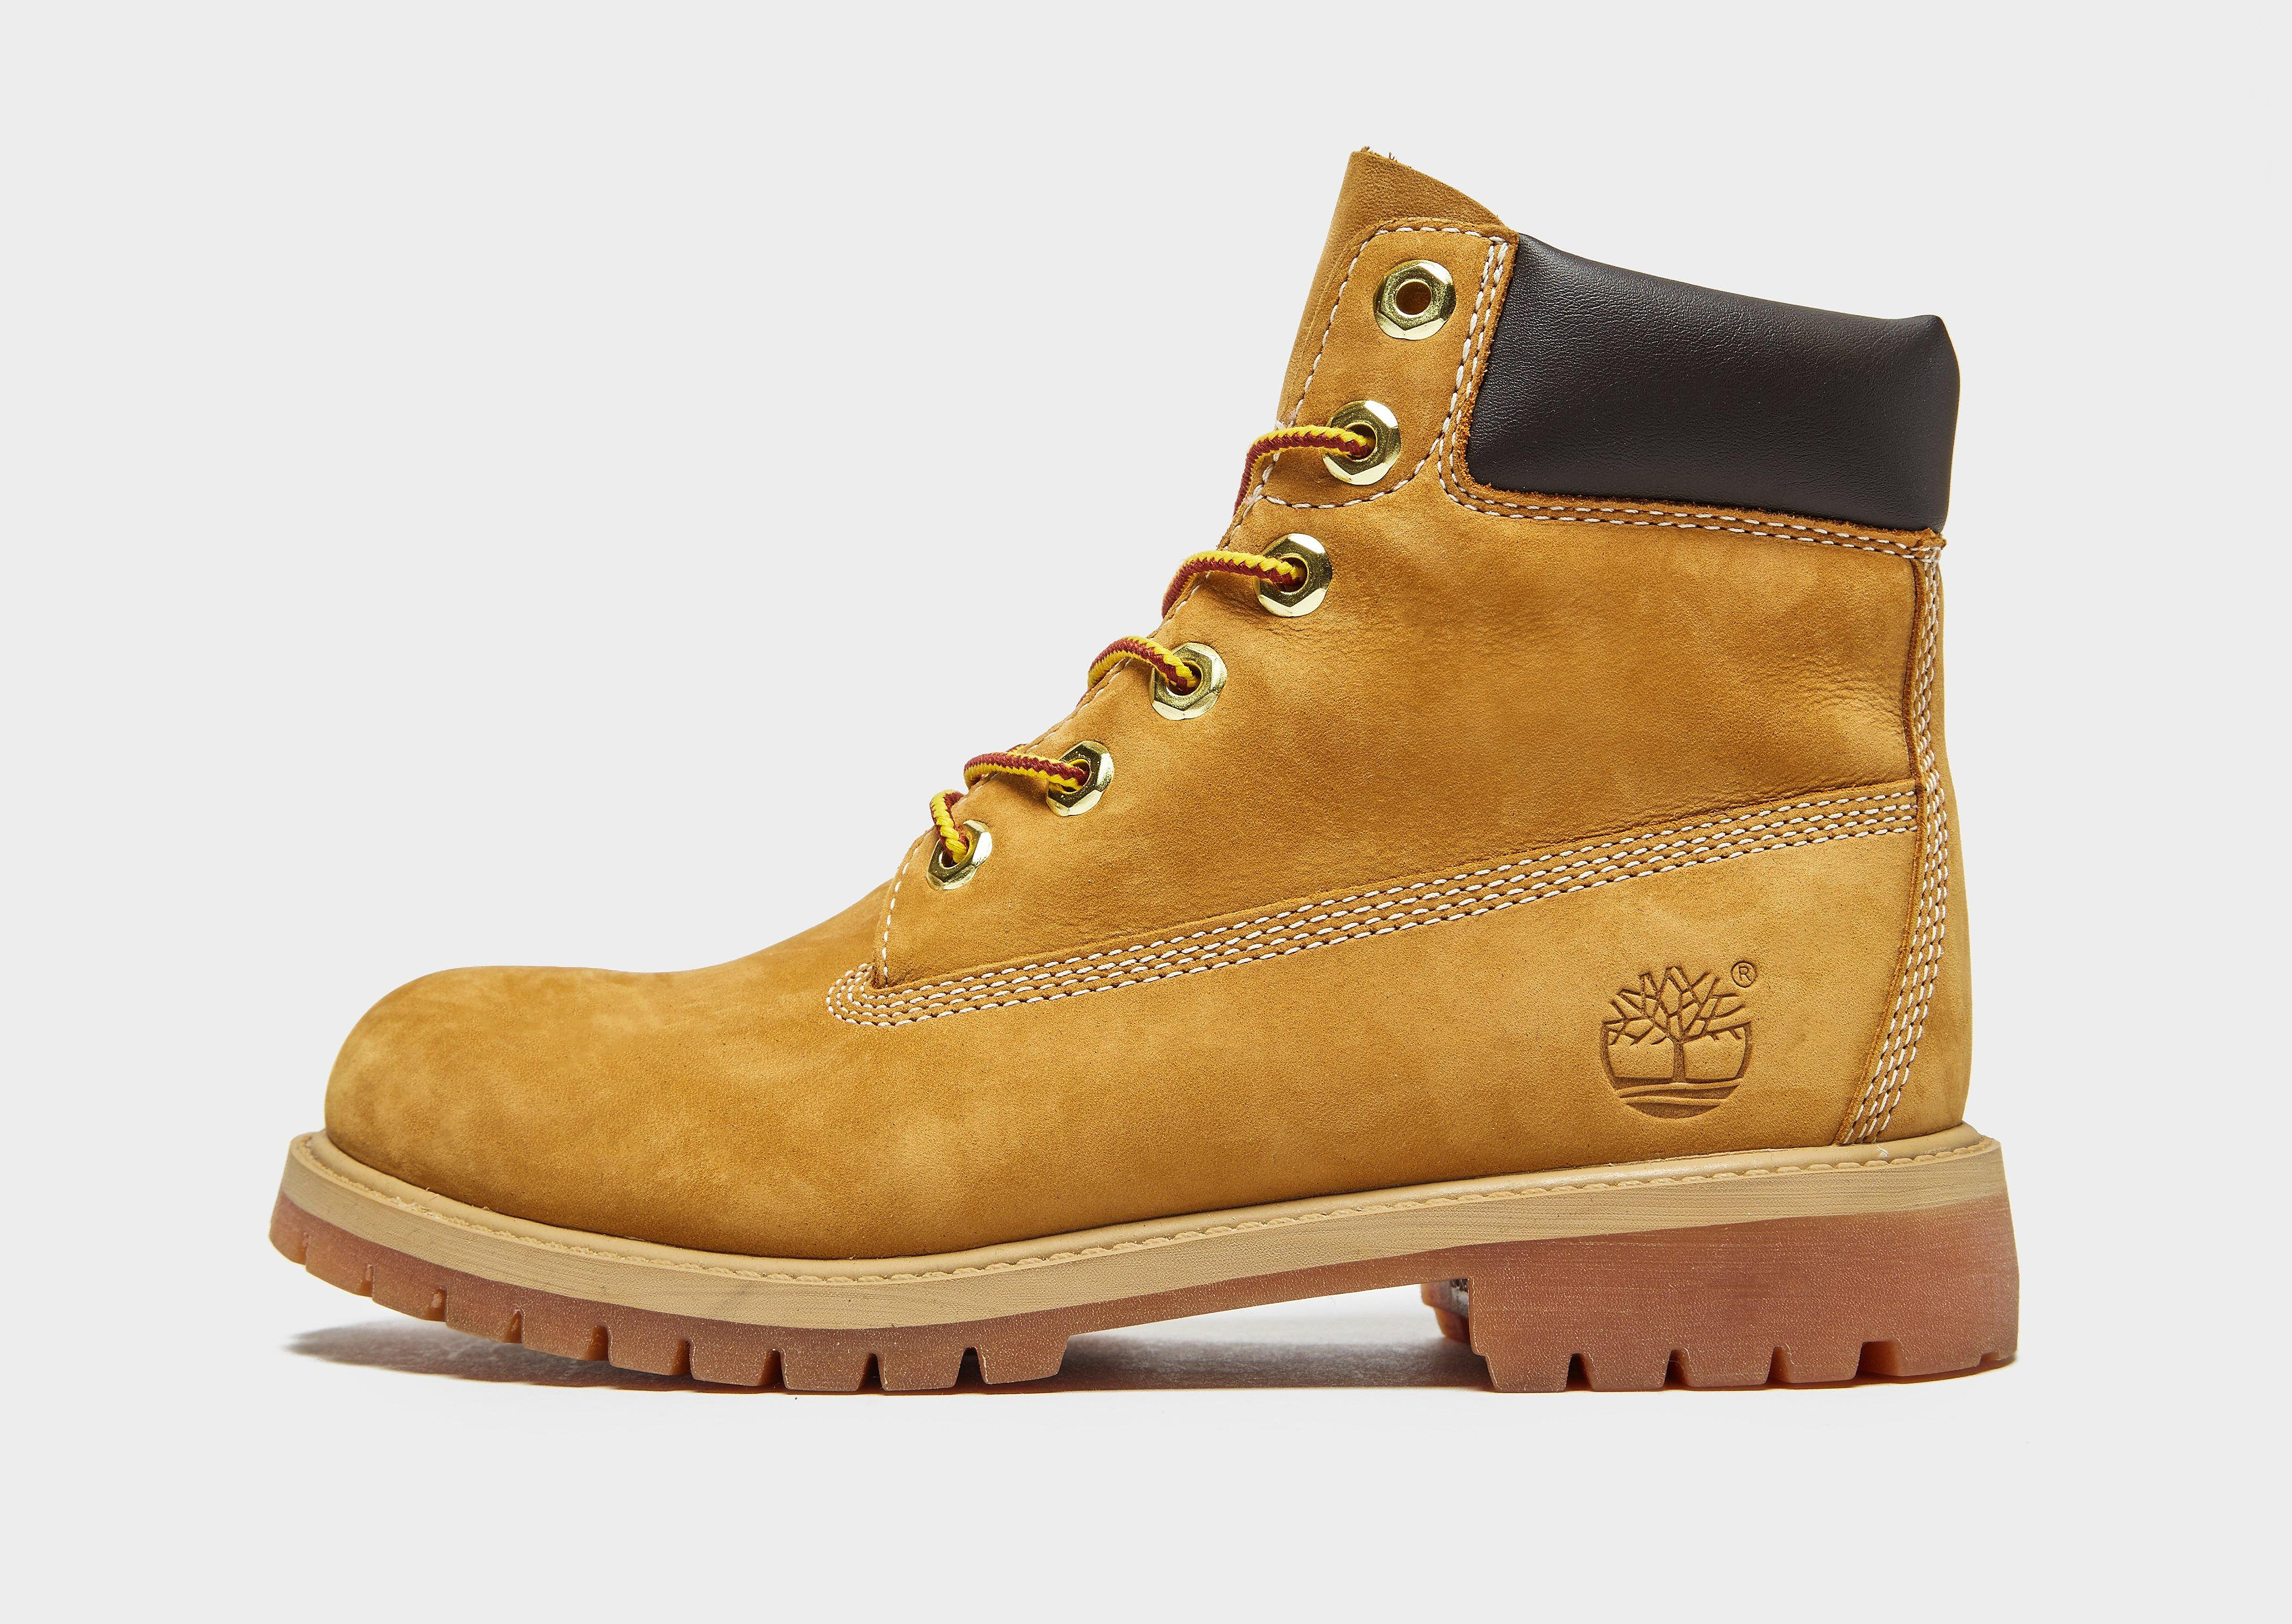 Timberland 6 Inch Boot Junior - Wheat - Kind